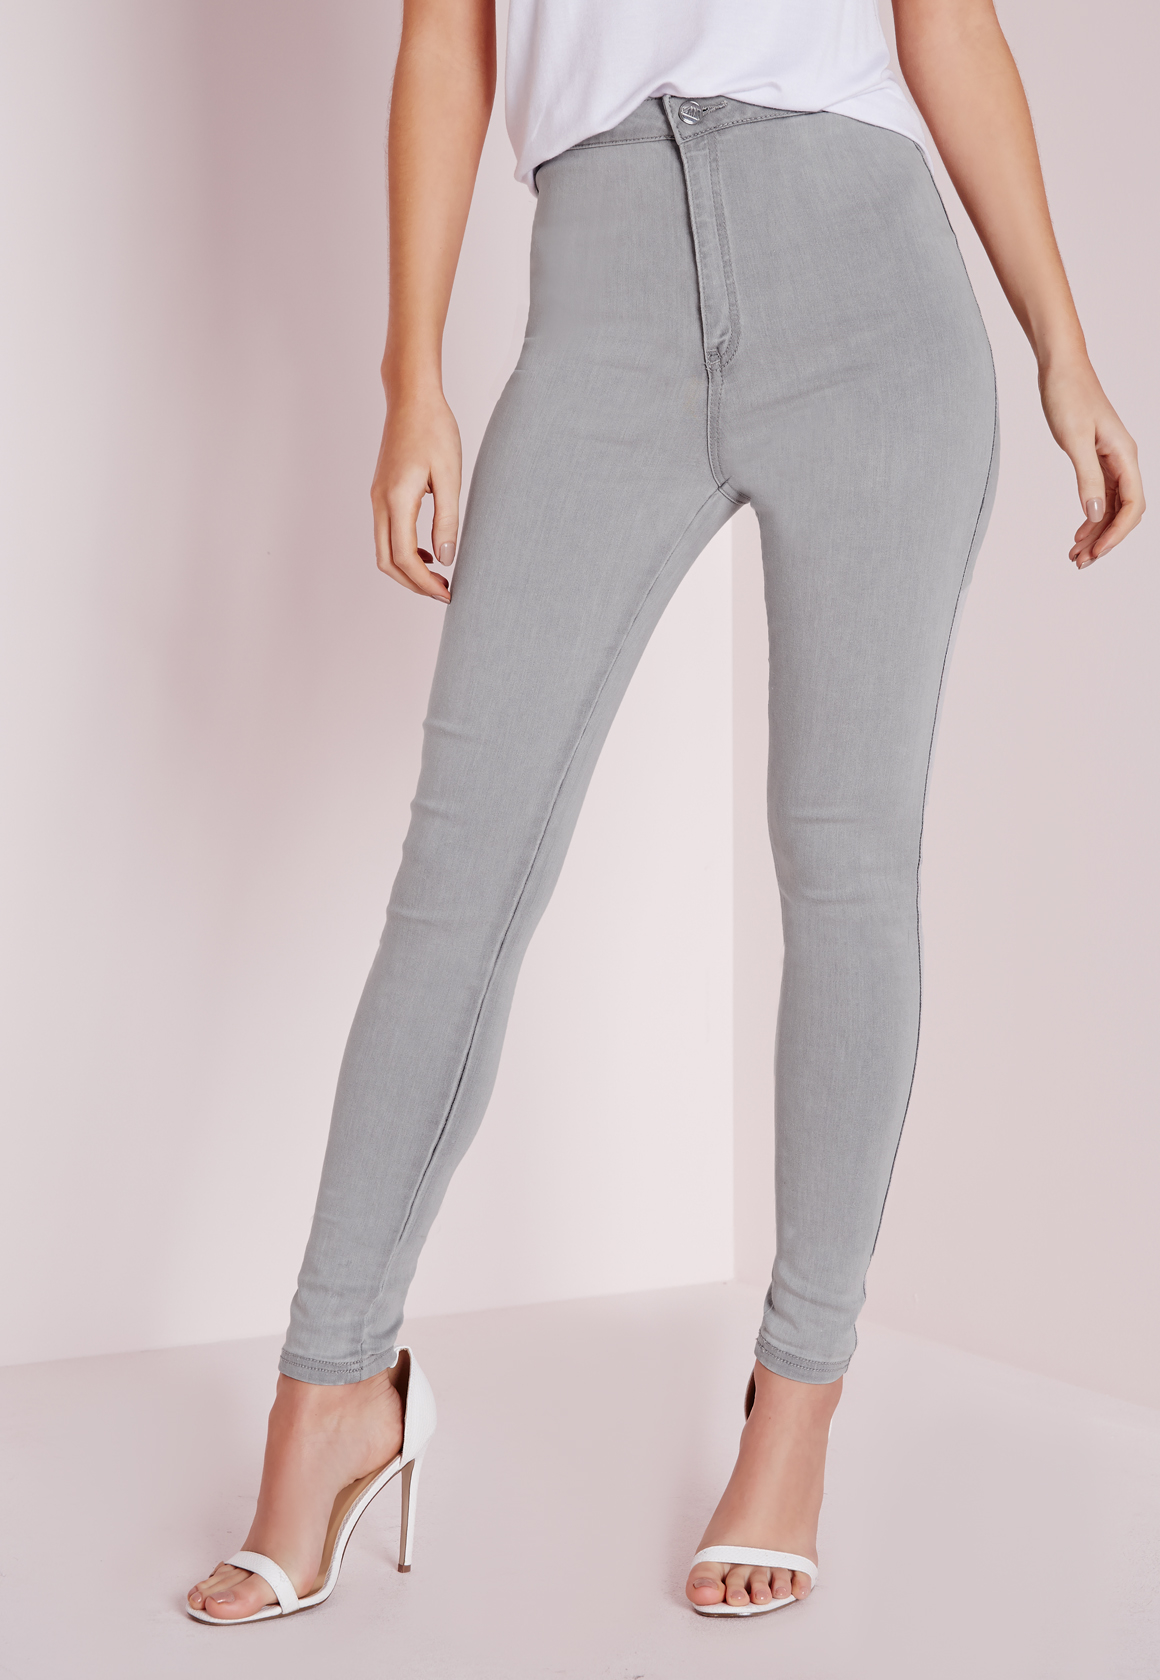 Jeans Light Stretch Skinny Waisted High Grey Vice Missguided Super zxZpTT